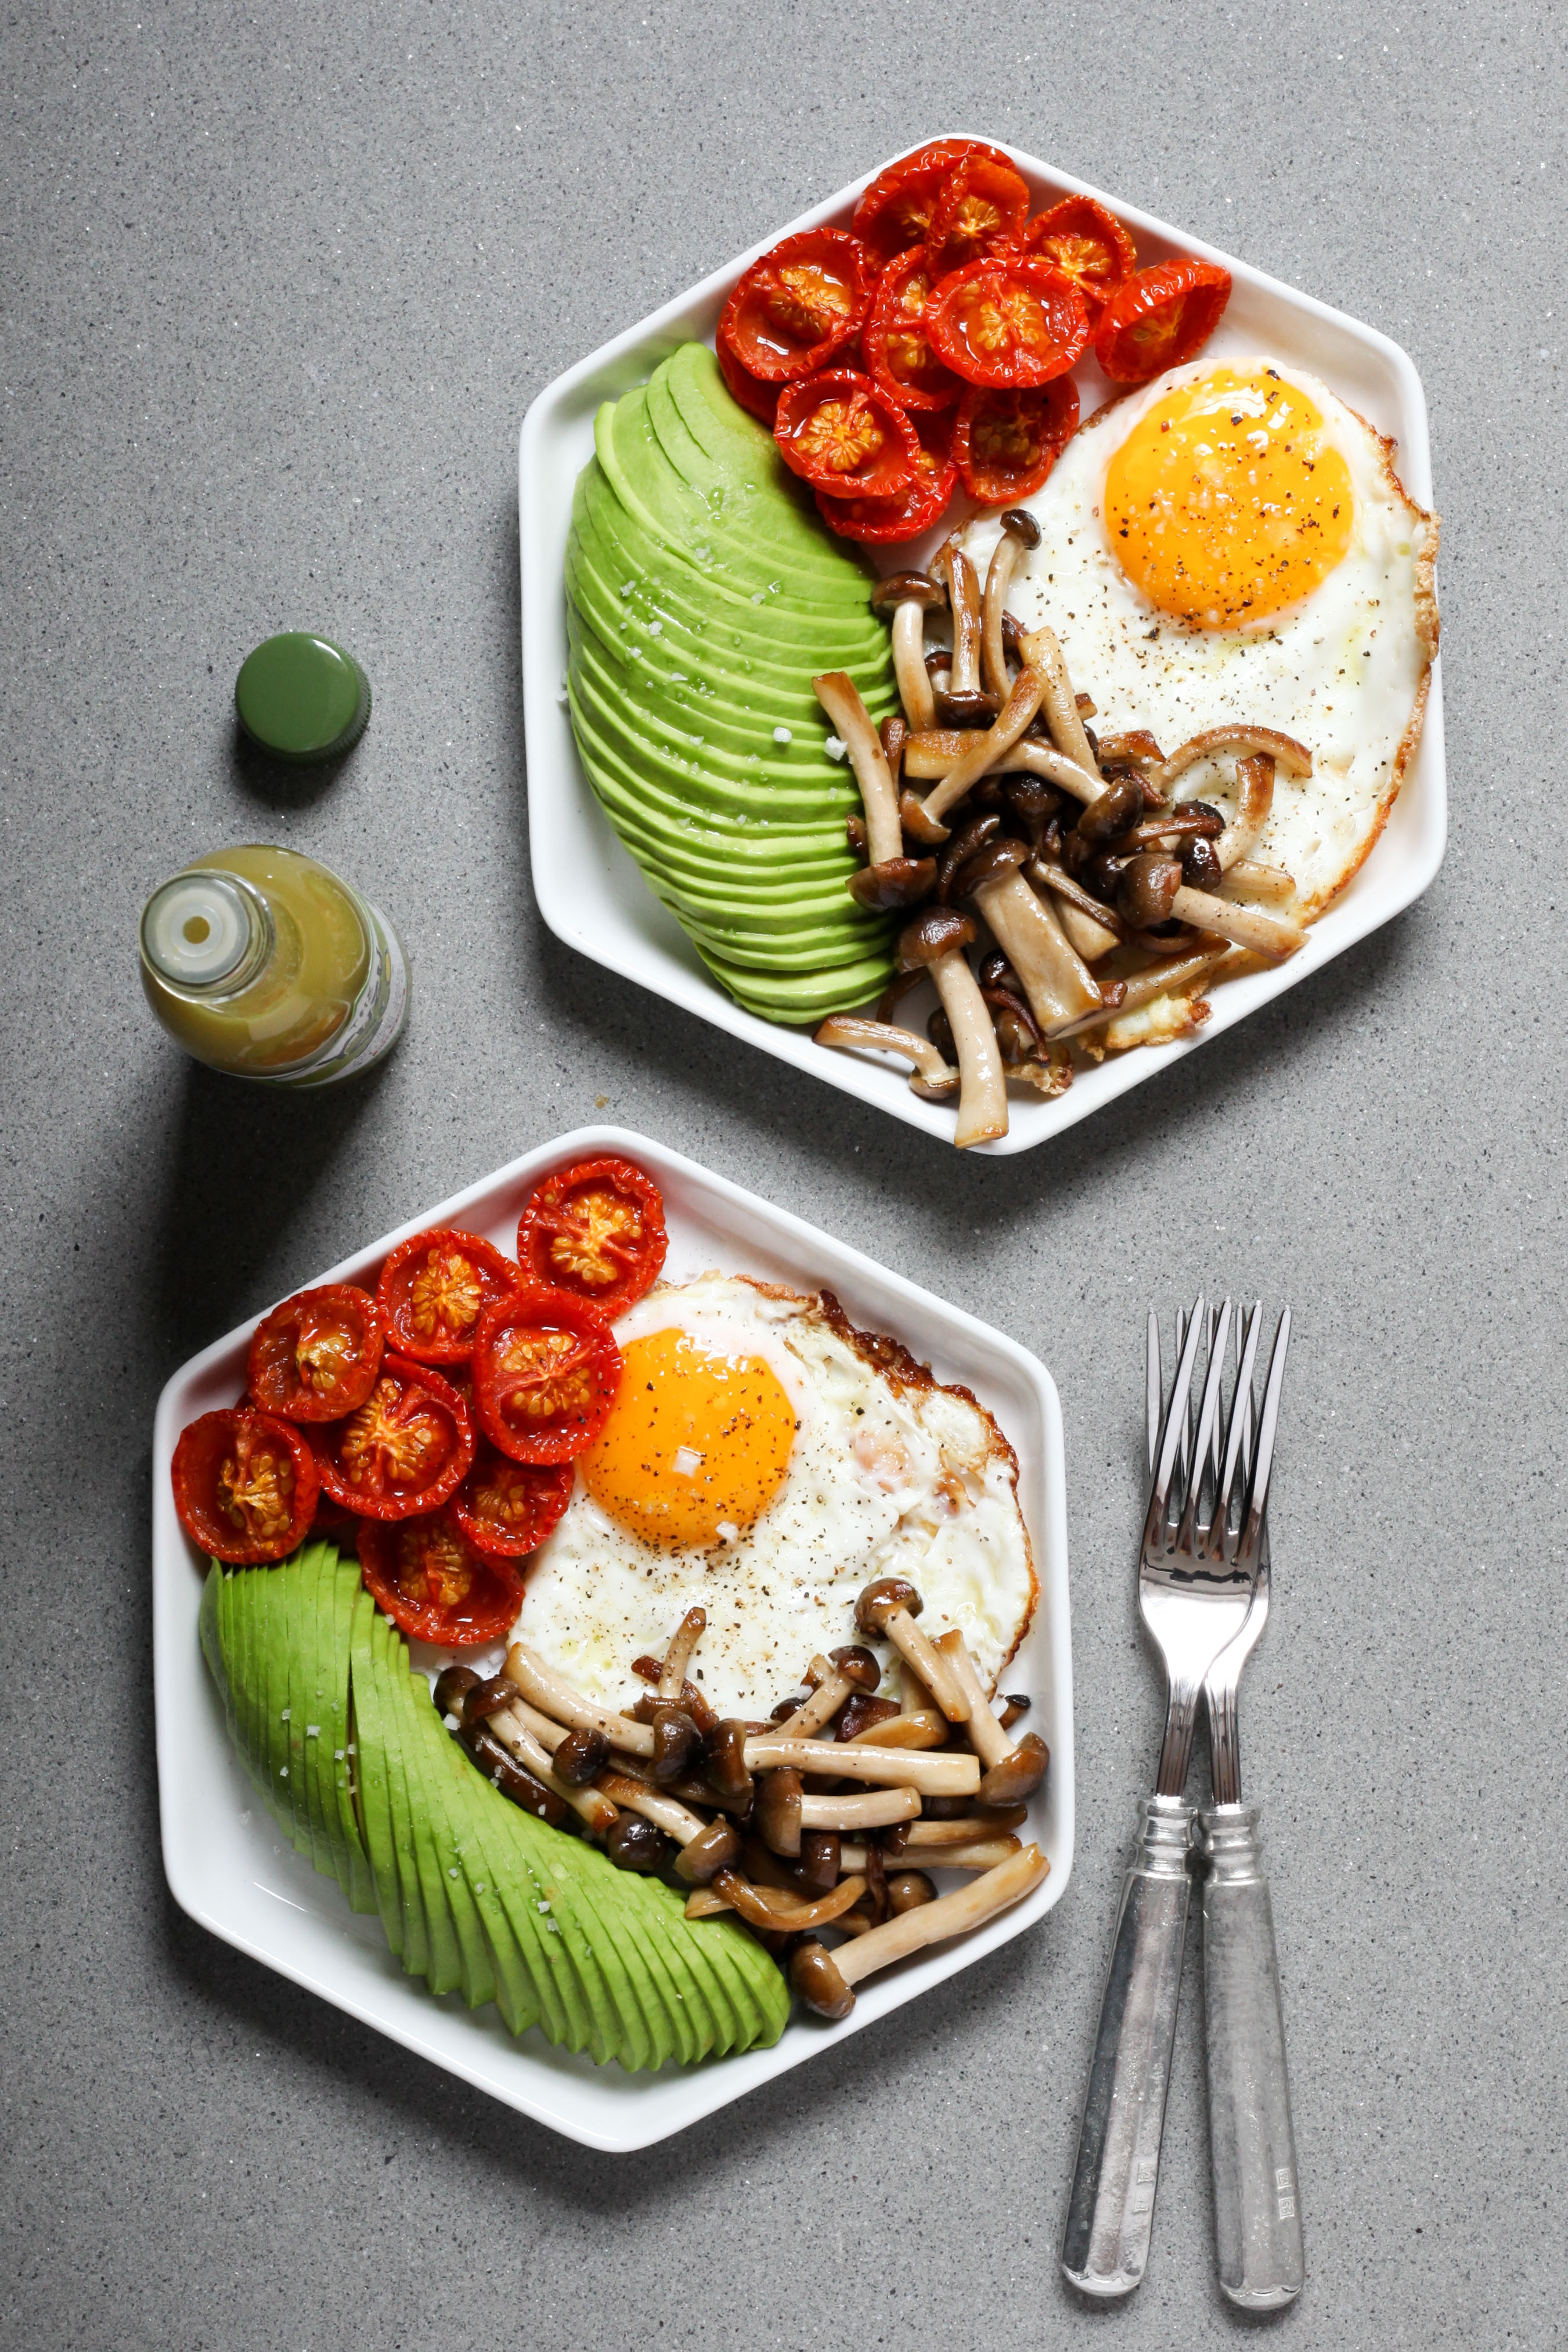 Fried Eggs With Roasted Tomatoes, Avocado, and Mushrooms | amodestfeast.com | @amodestfeast